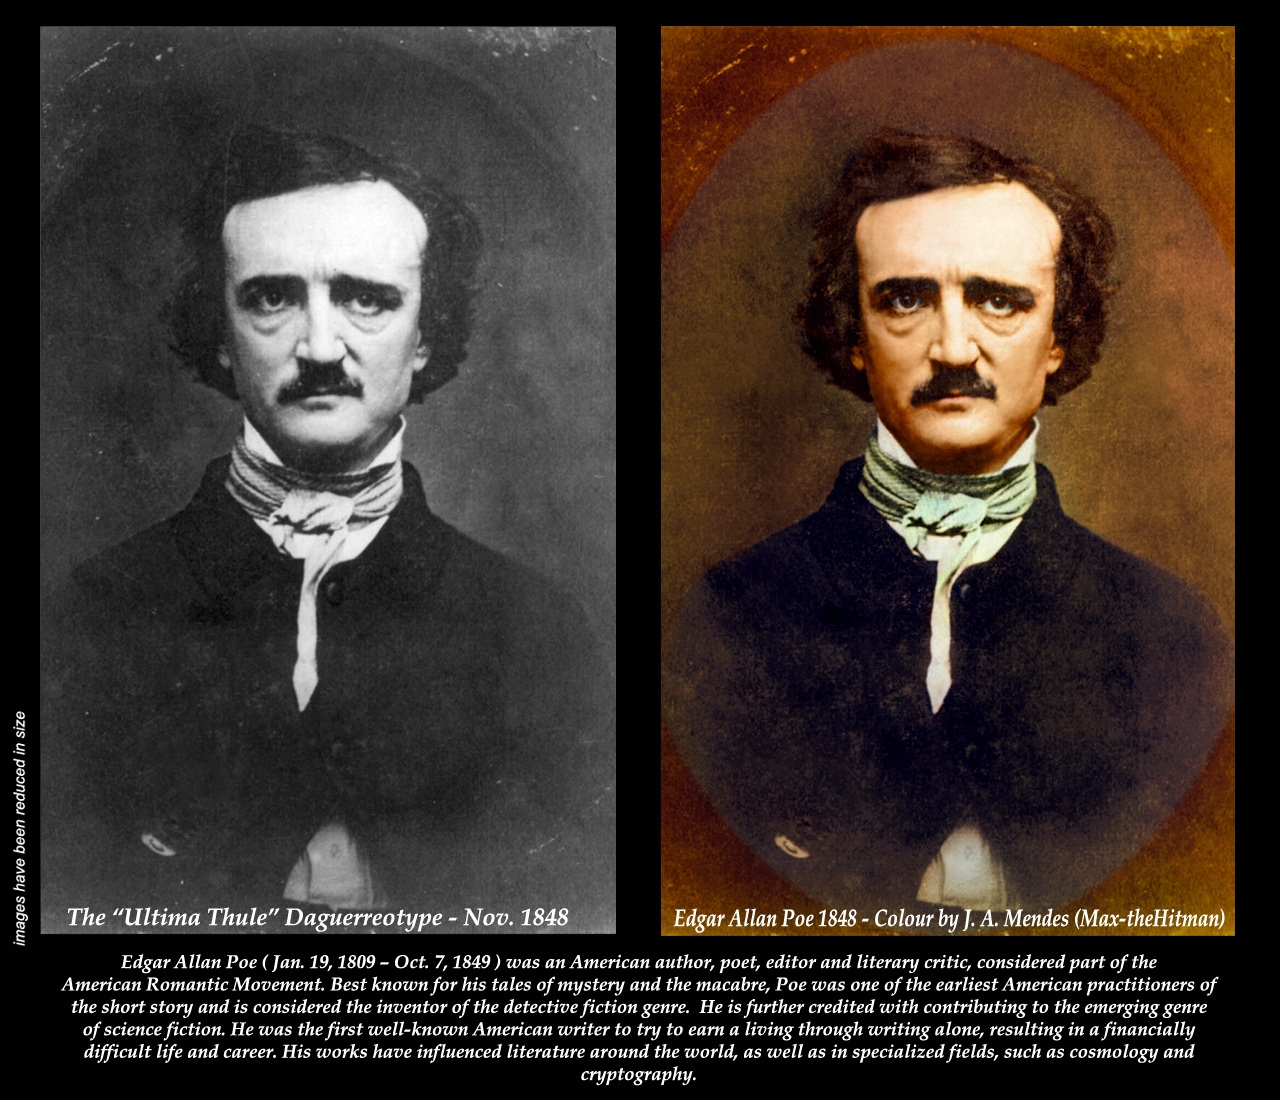 the early life and works of edgar allan poe